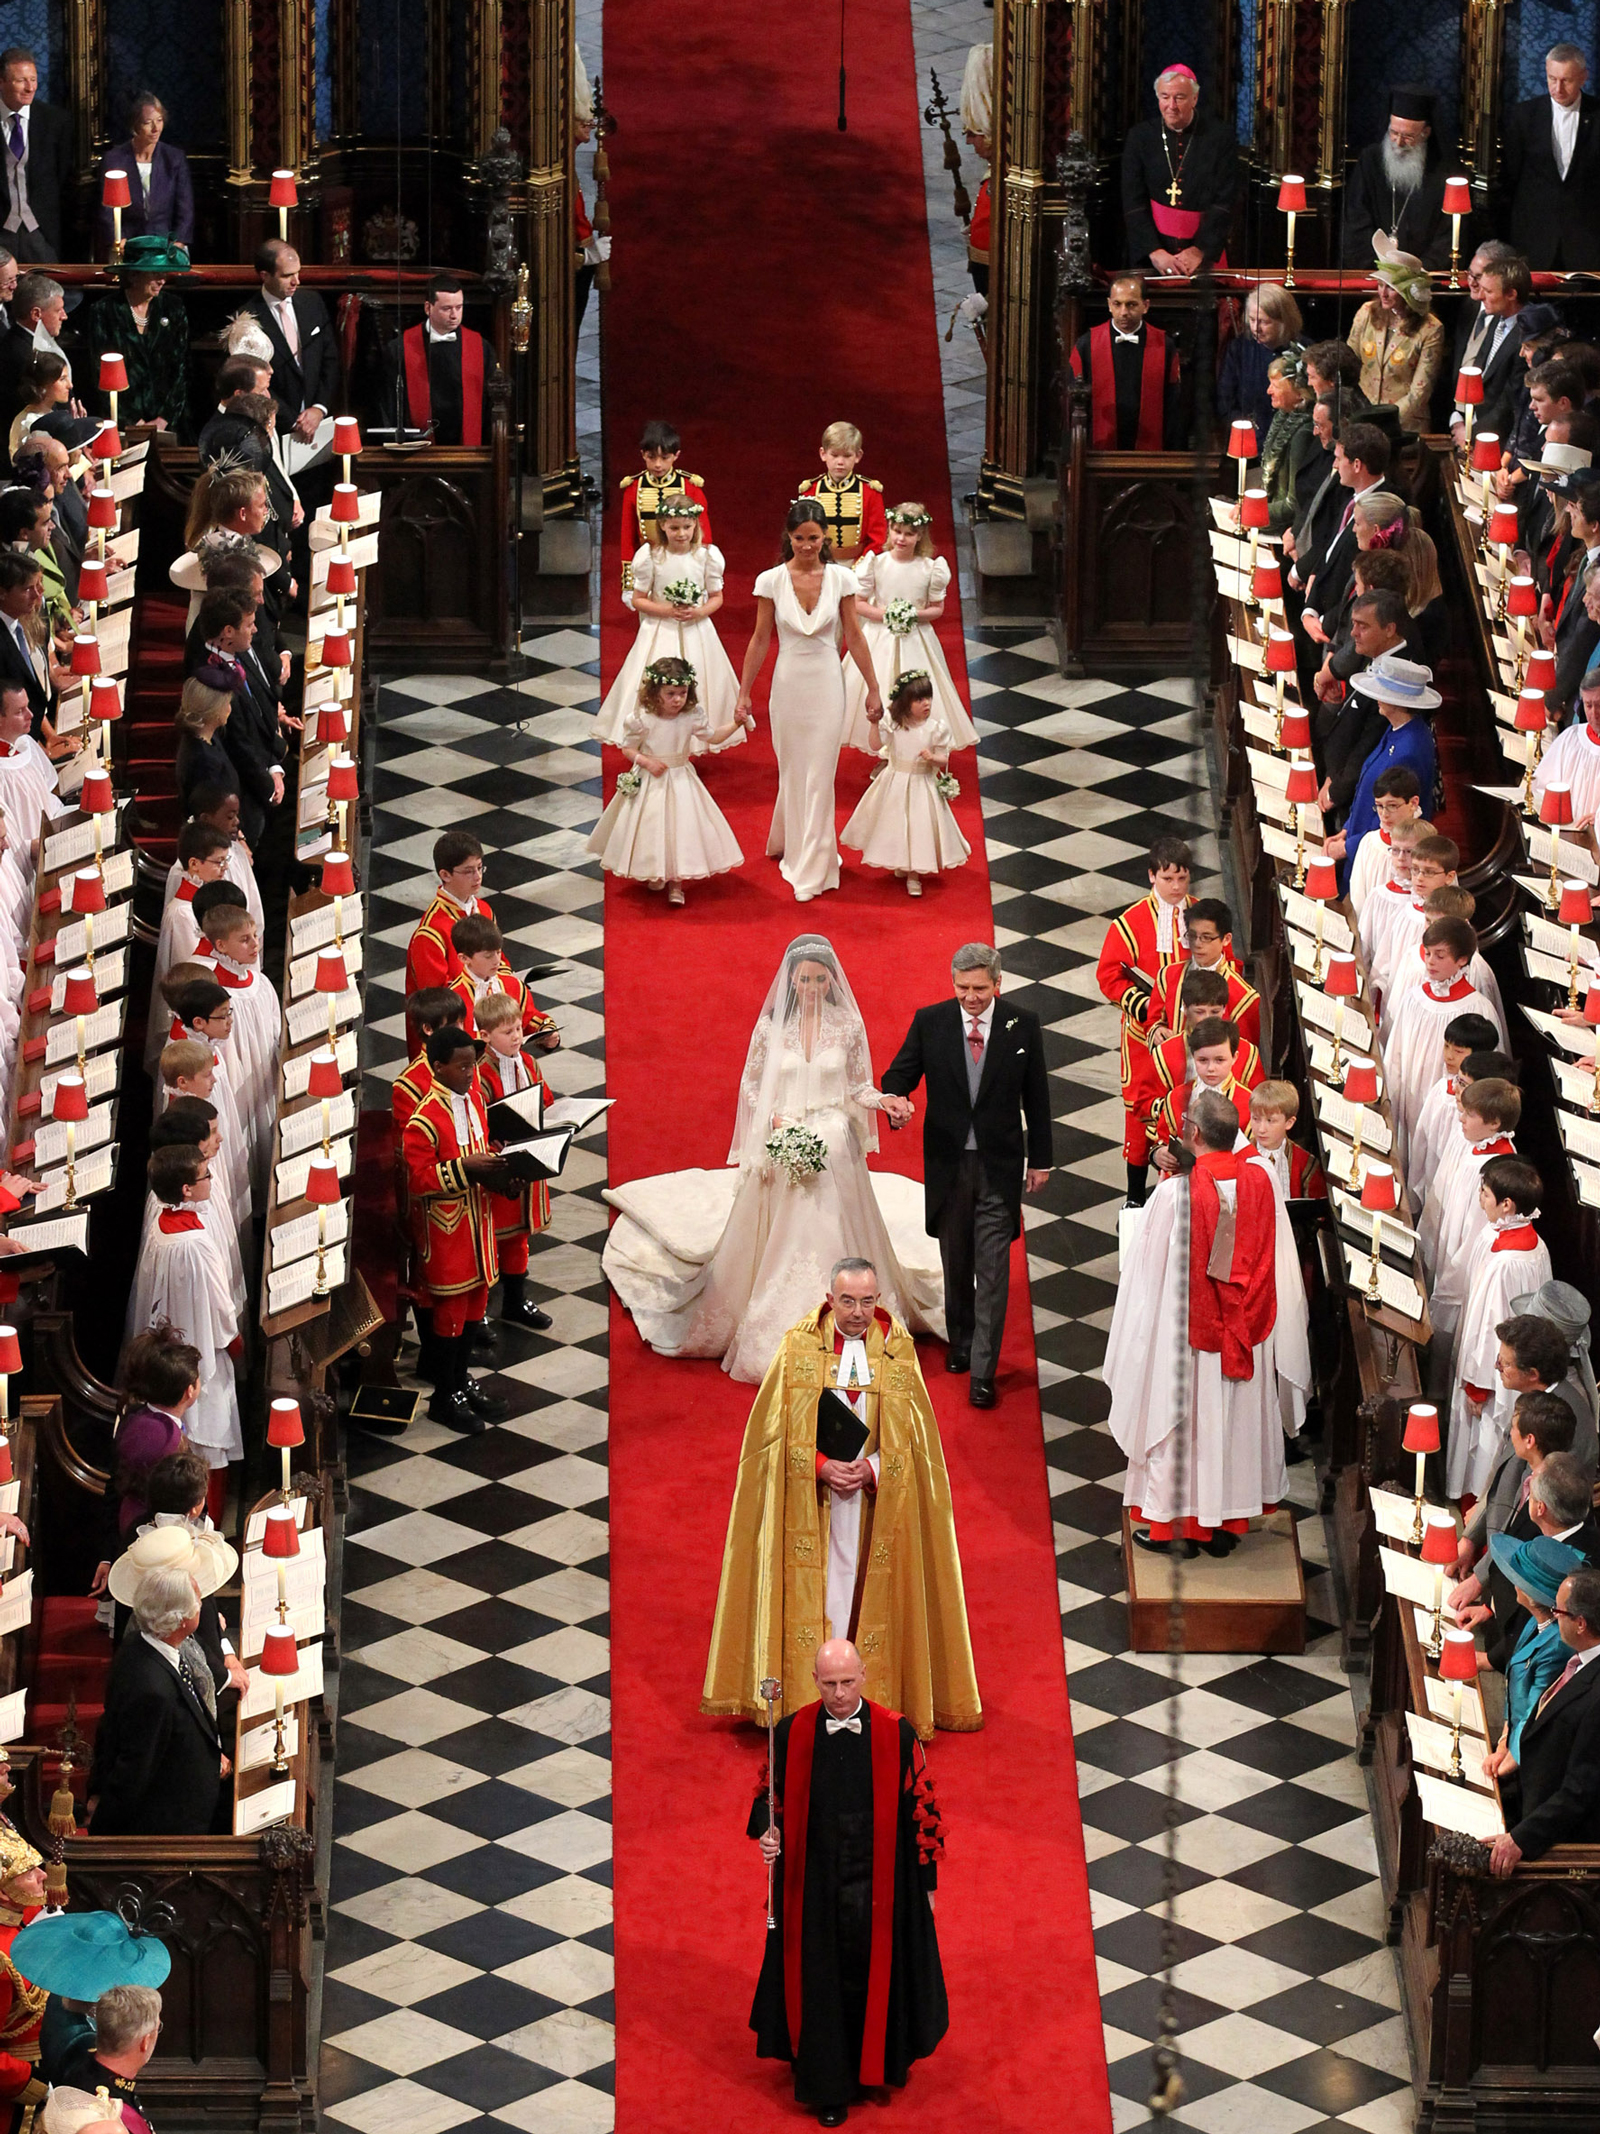 will and kate processional wedding